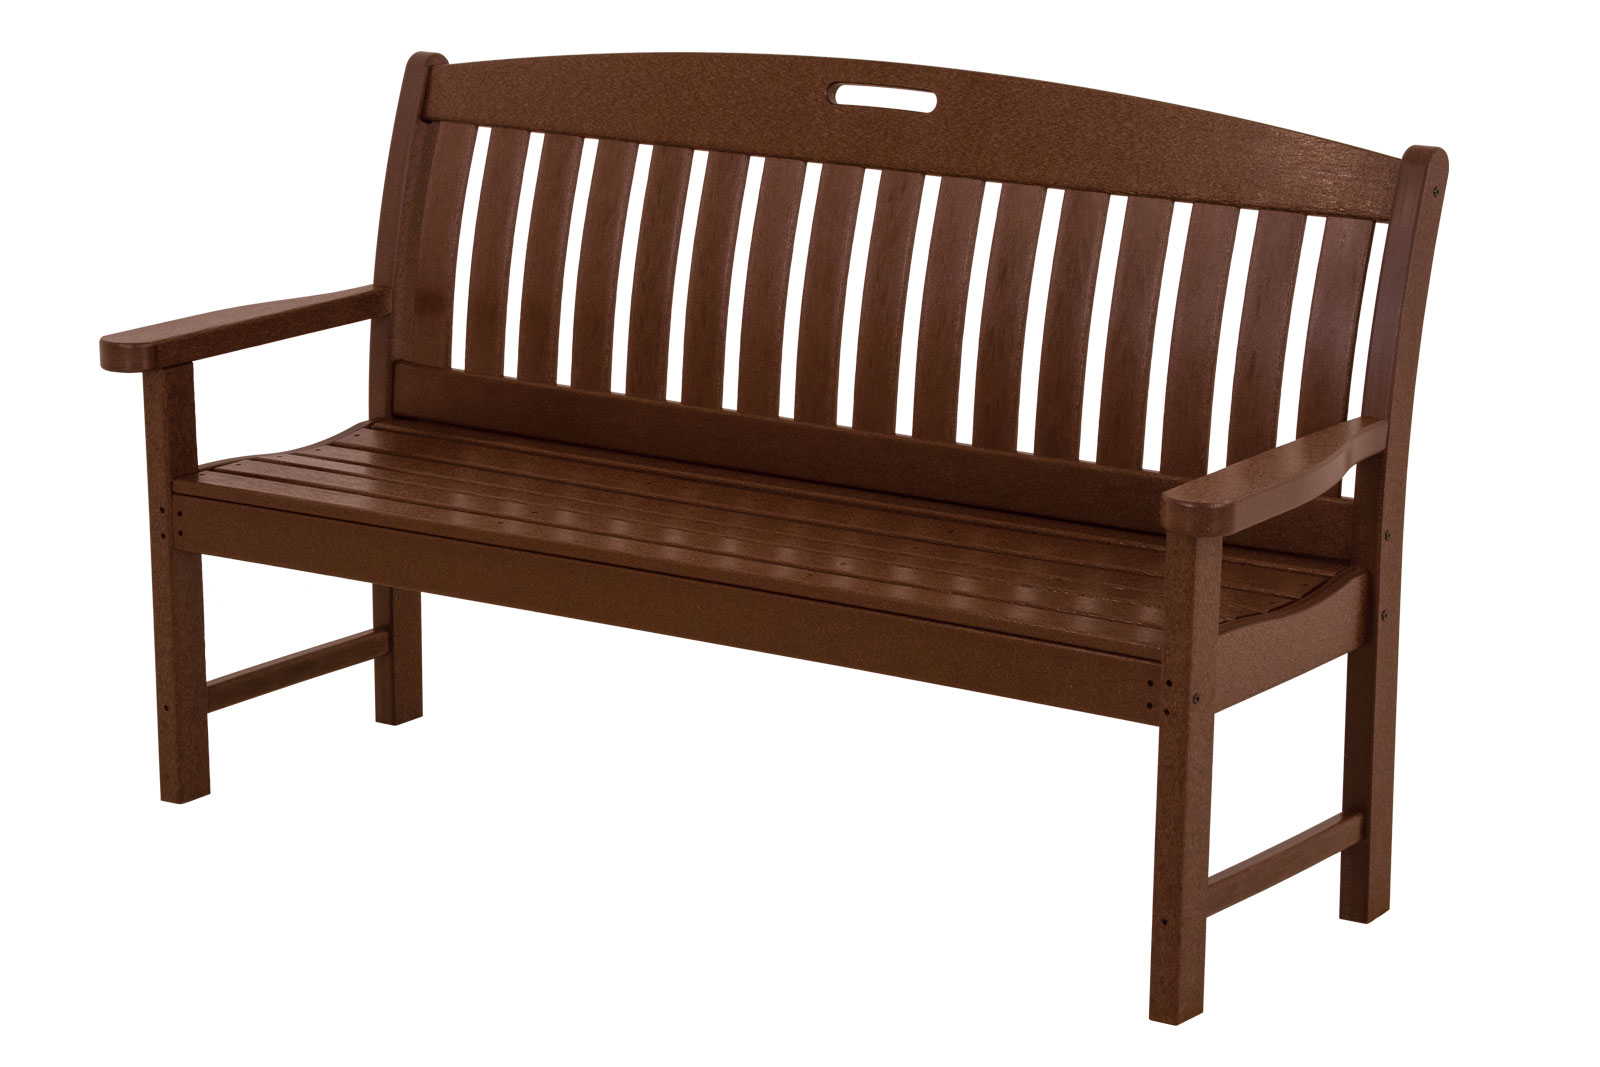 Polywood nautical 60 bench Polywood bench